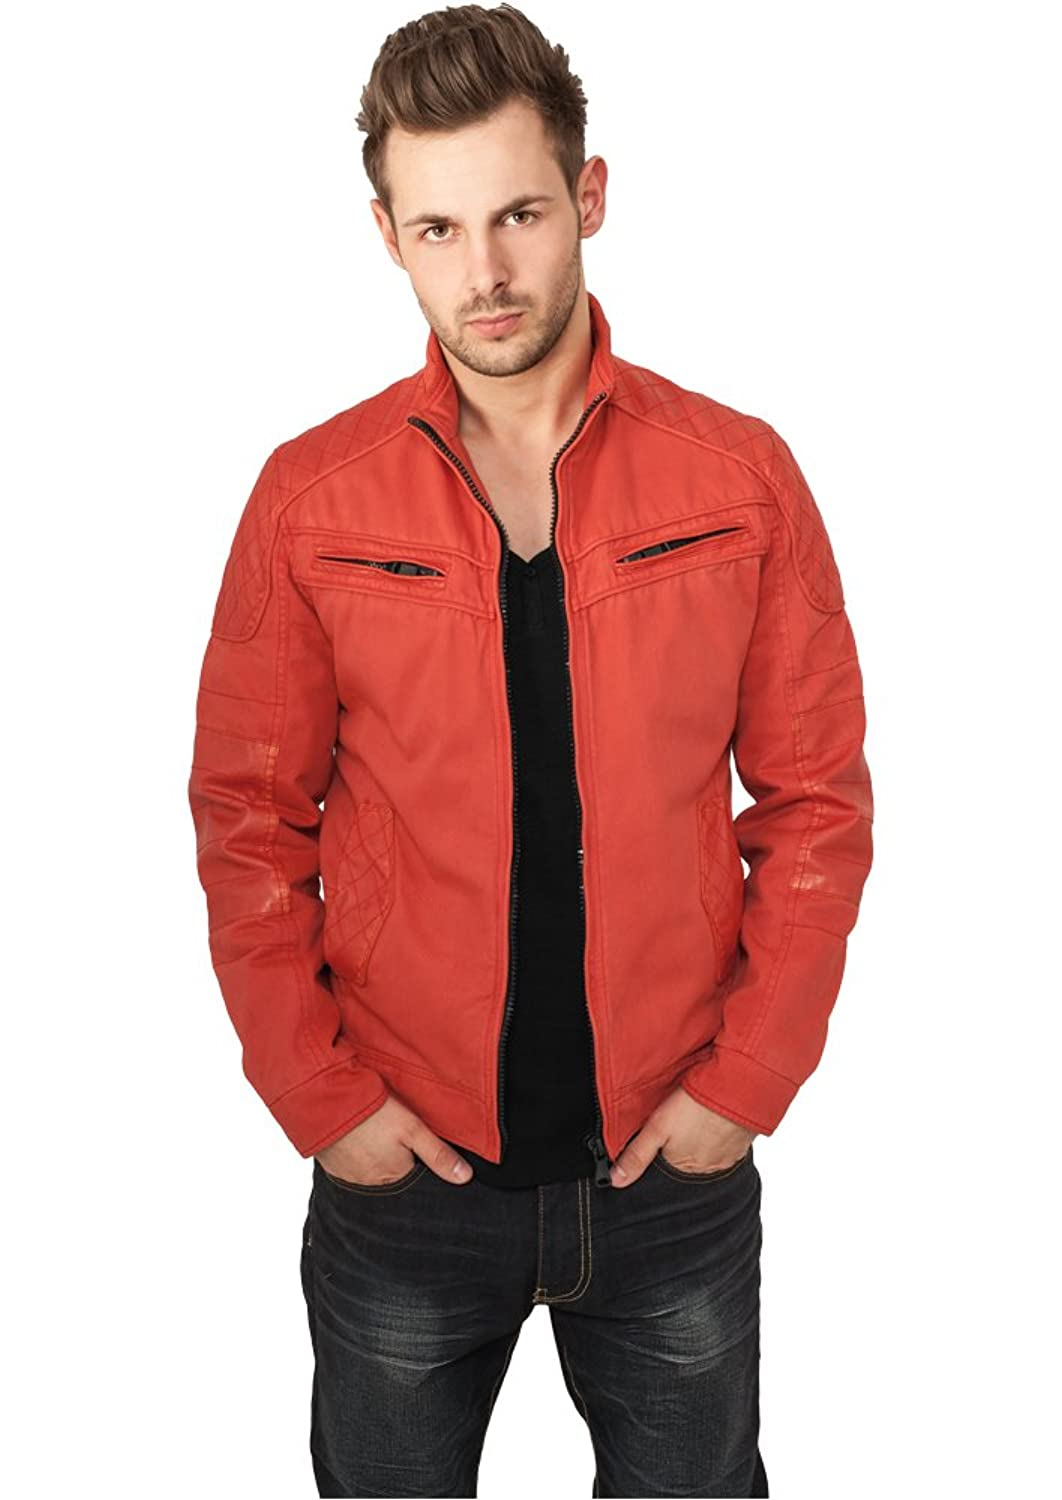 URBAN CLASSICS Cotton / Leathermix Racer (red) Jacket